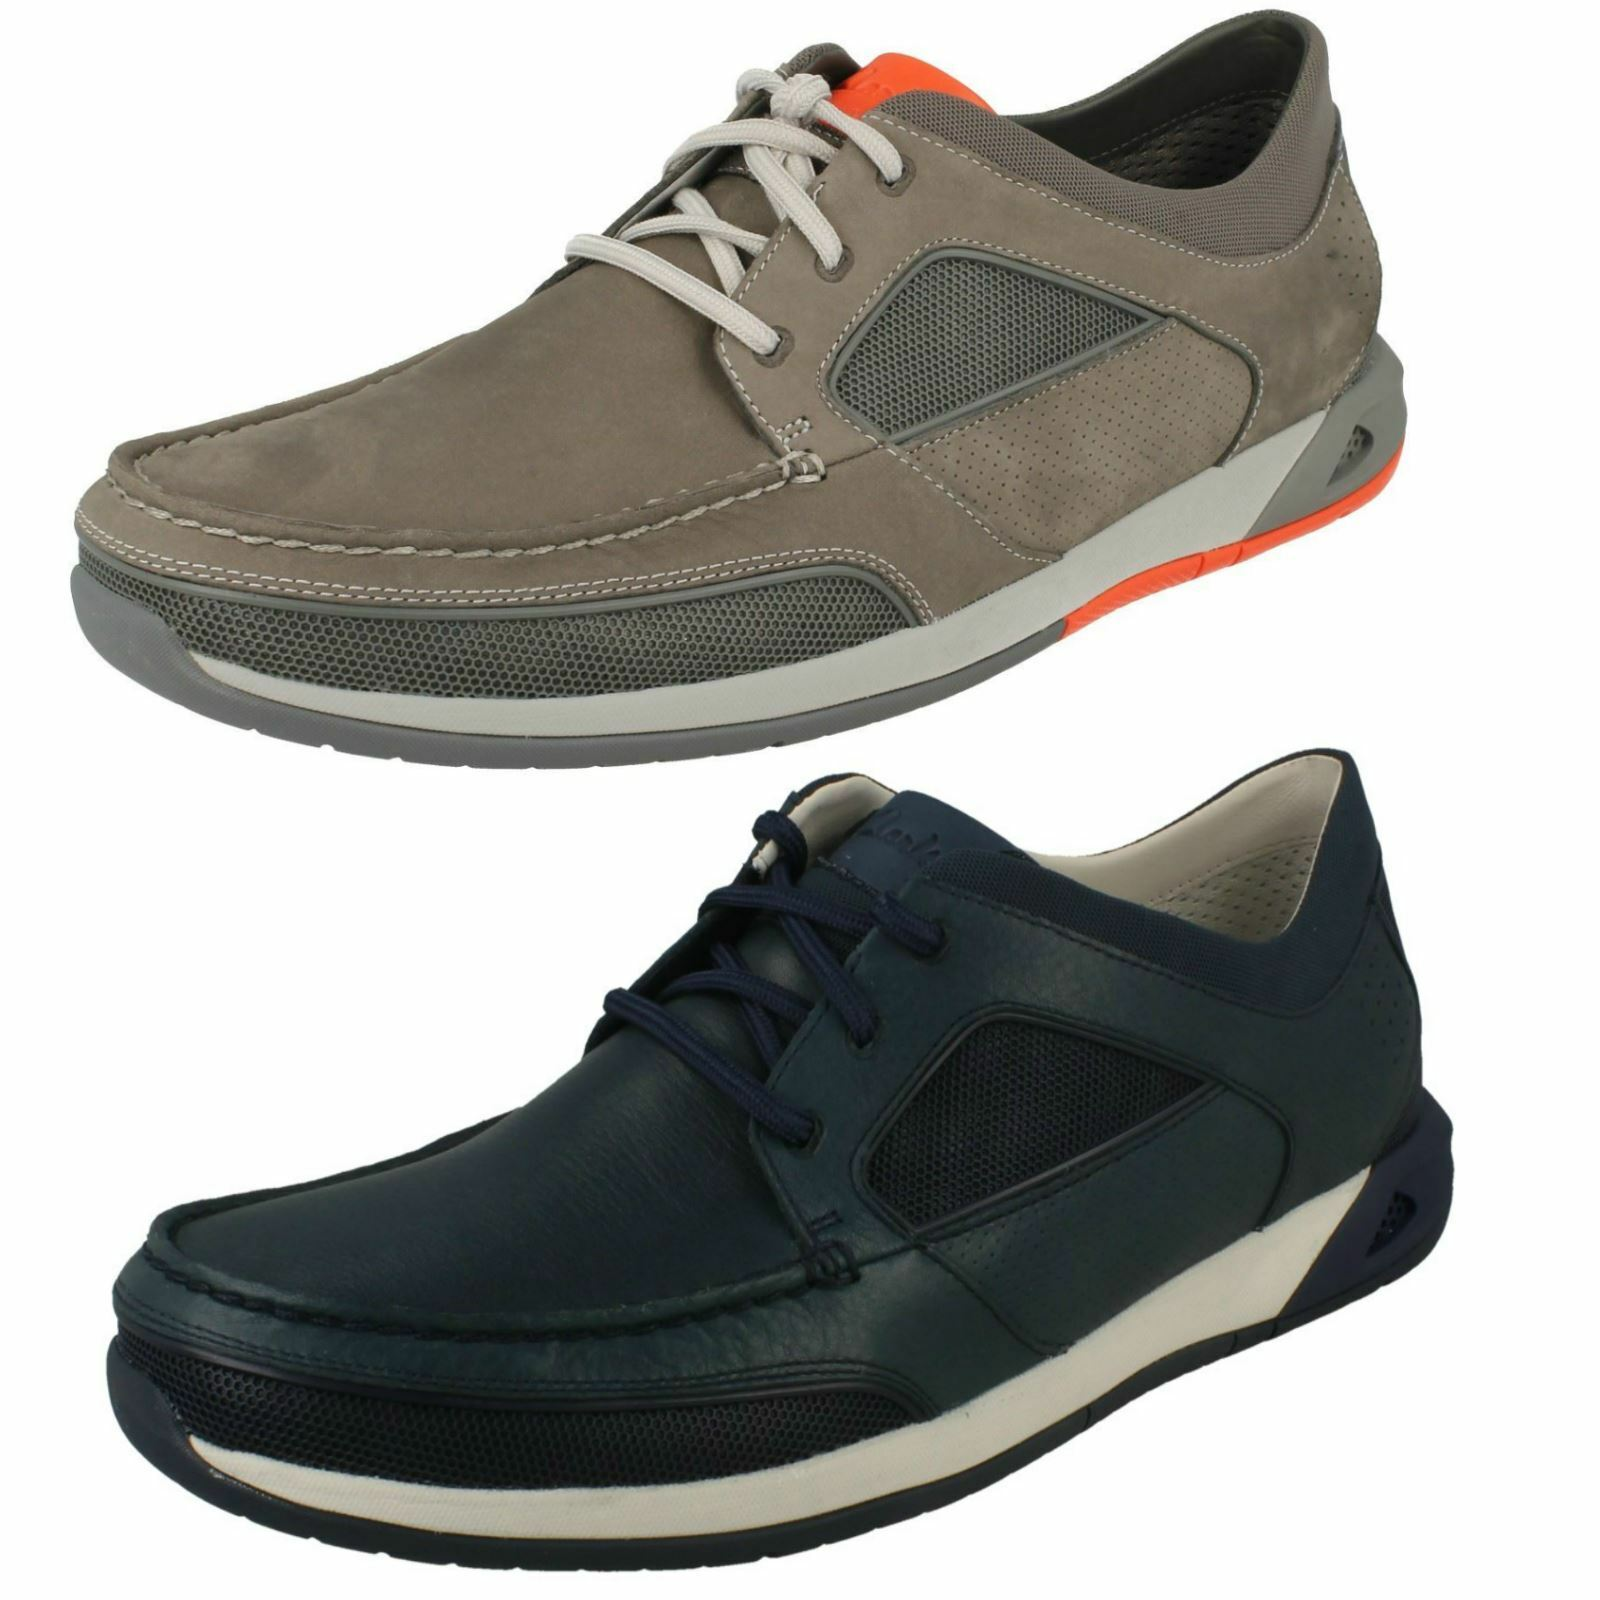 Mens Clarks Ormand Sail Casual Lace Up Moccasin Style shoes